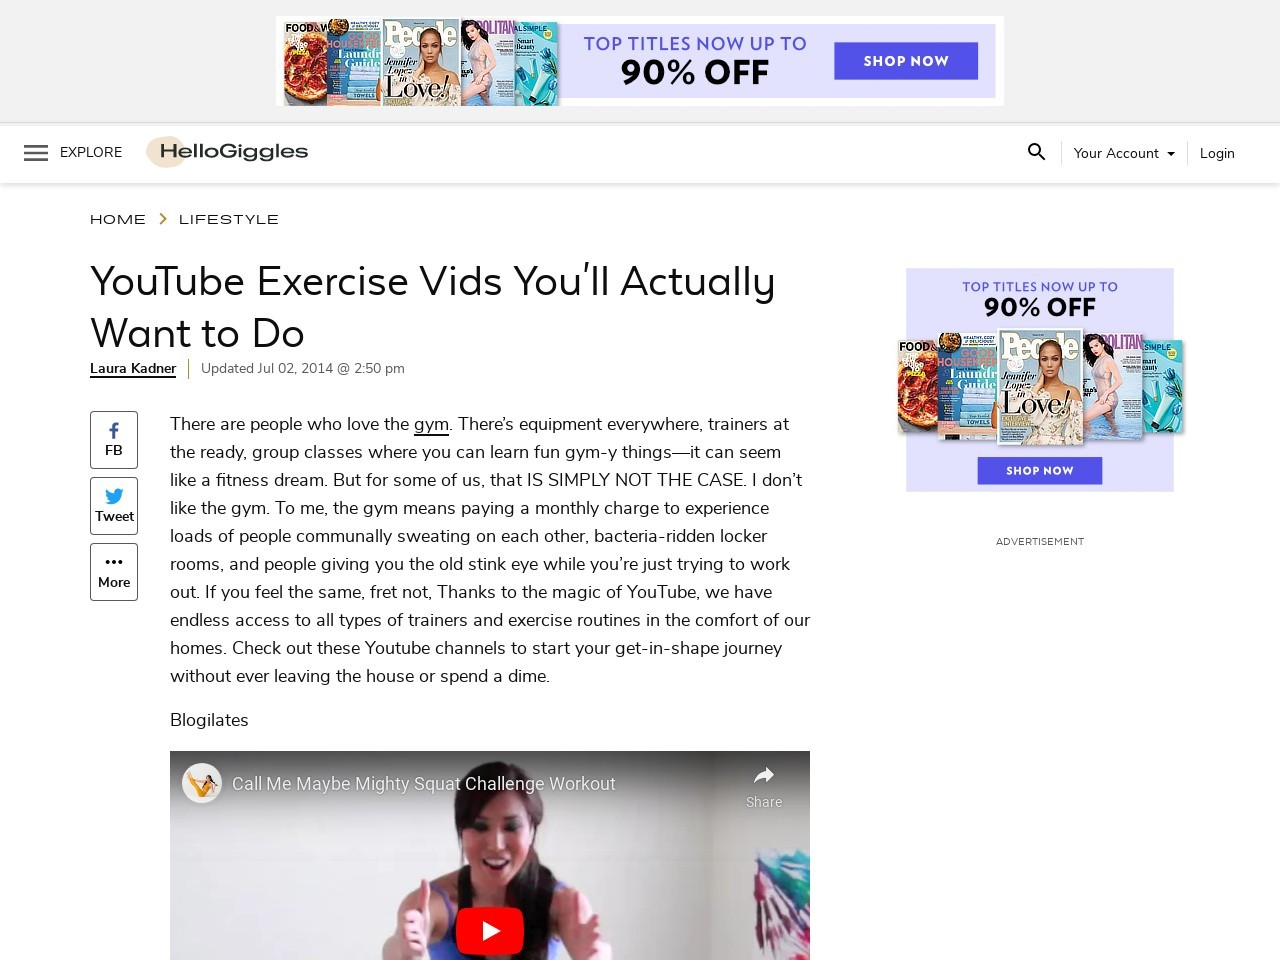 YouTube Exercise Vids You'll Actually Want to Do